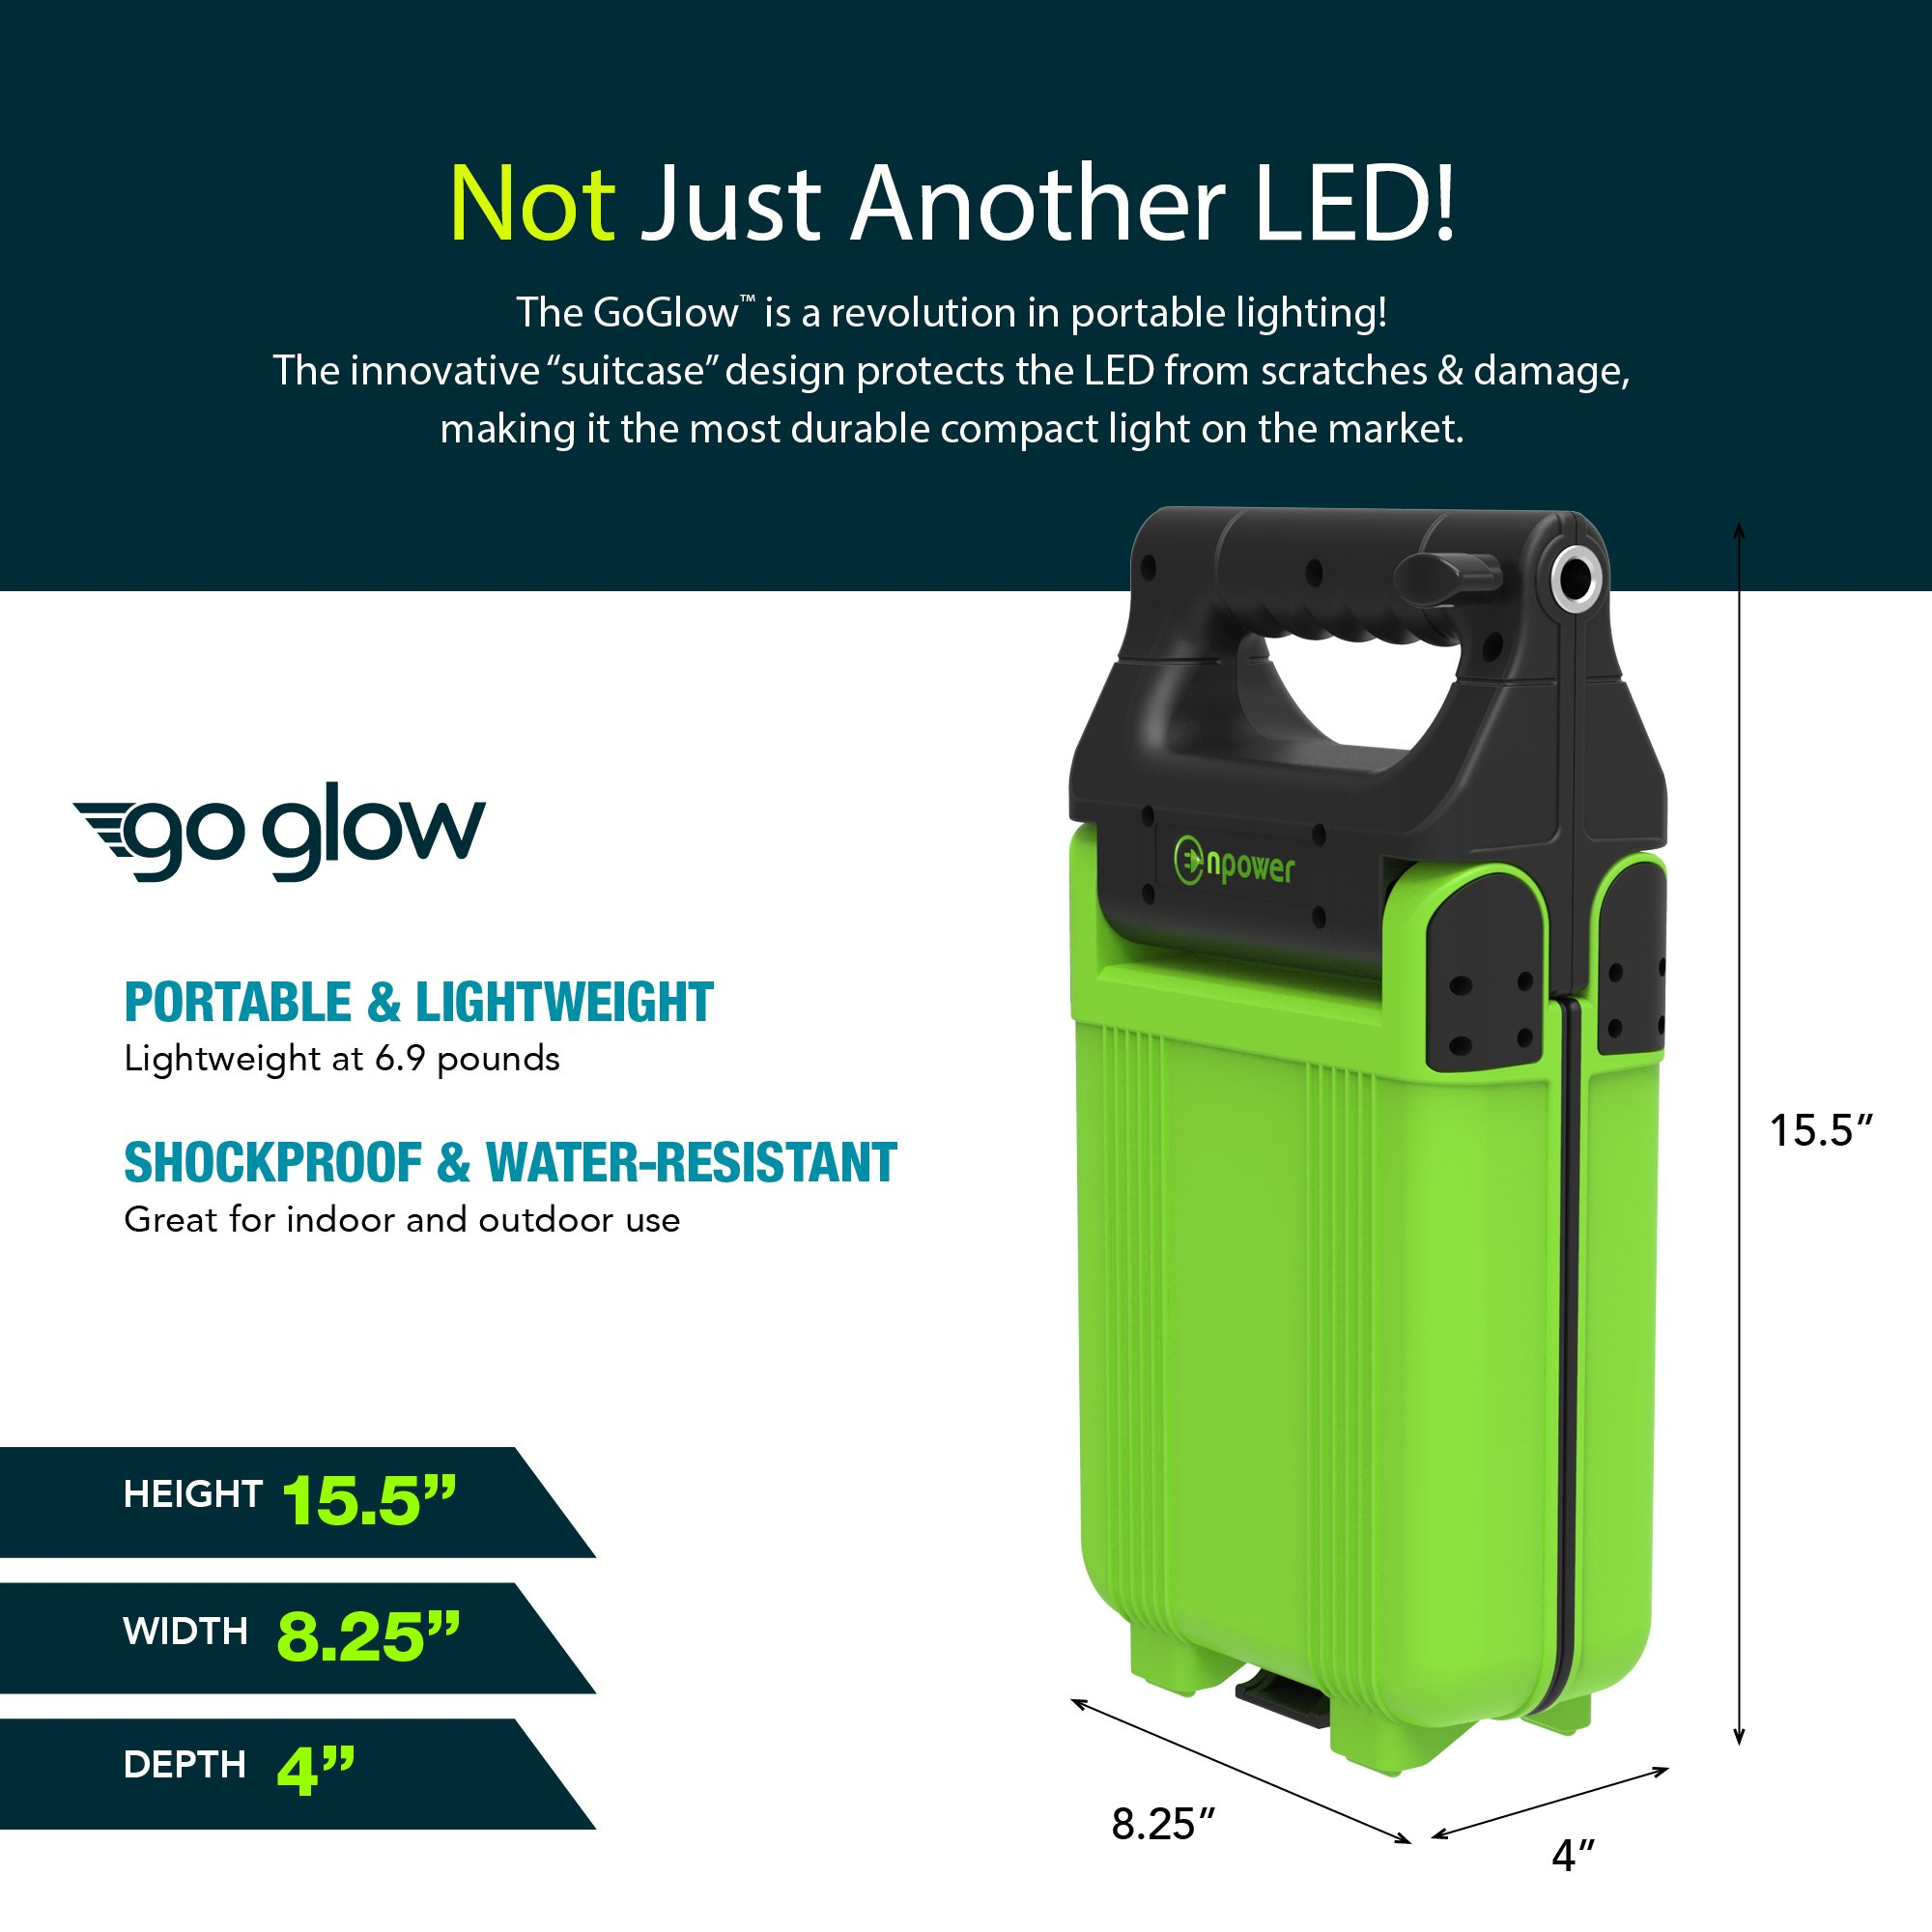 GoGlow LiteBook Bundle - Upgraded 2.0 TRIPOD INCLUDED - 30W Portable Rechargeable Day Light White Light (5000-5500k) Work Light, Camping, Garage or Auto Repair, Emergency (Green) by Enpower (Image #2)